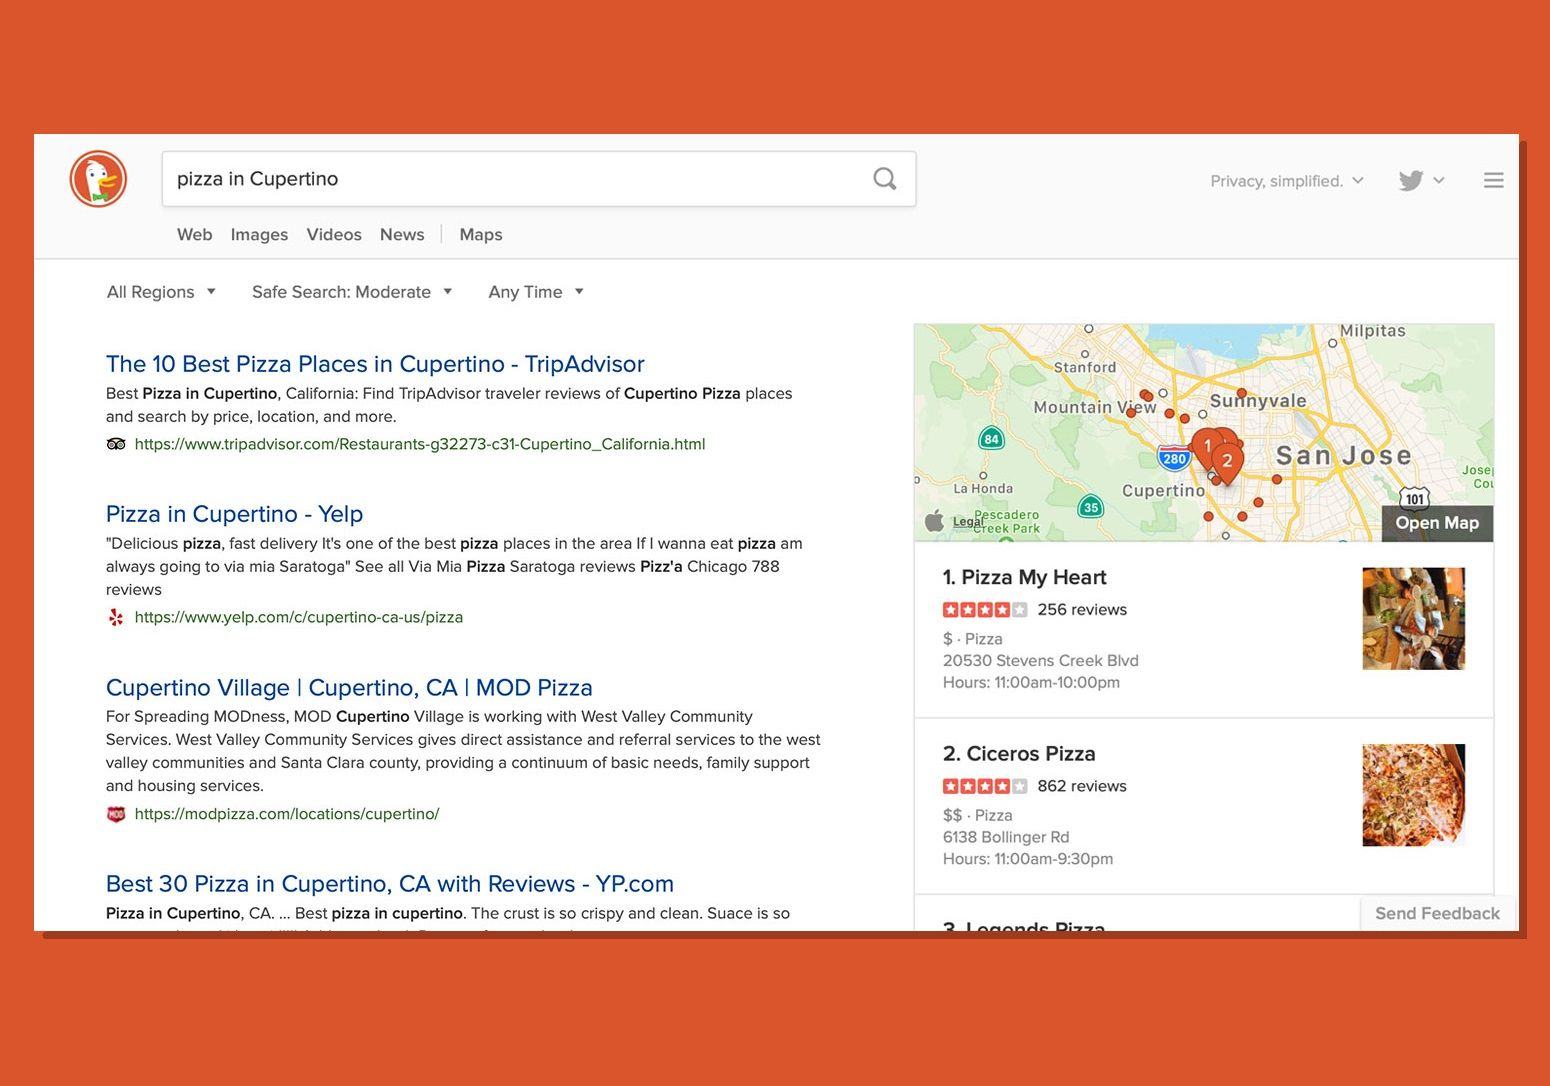 DuckDuckGo integrates Apple Maps with local web searches